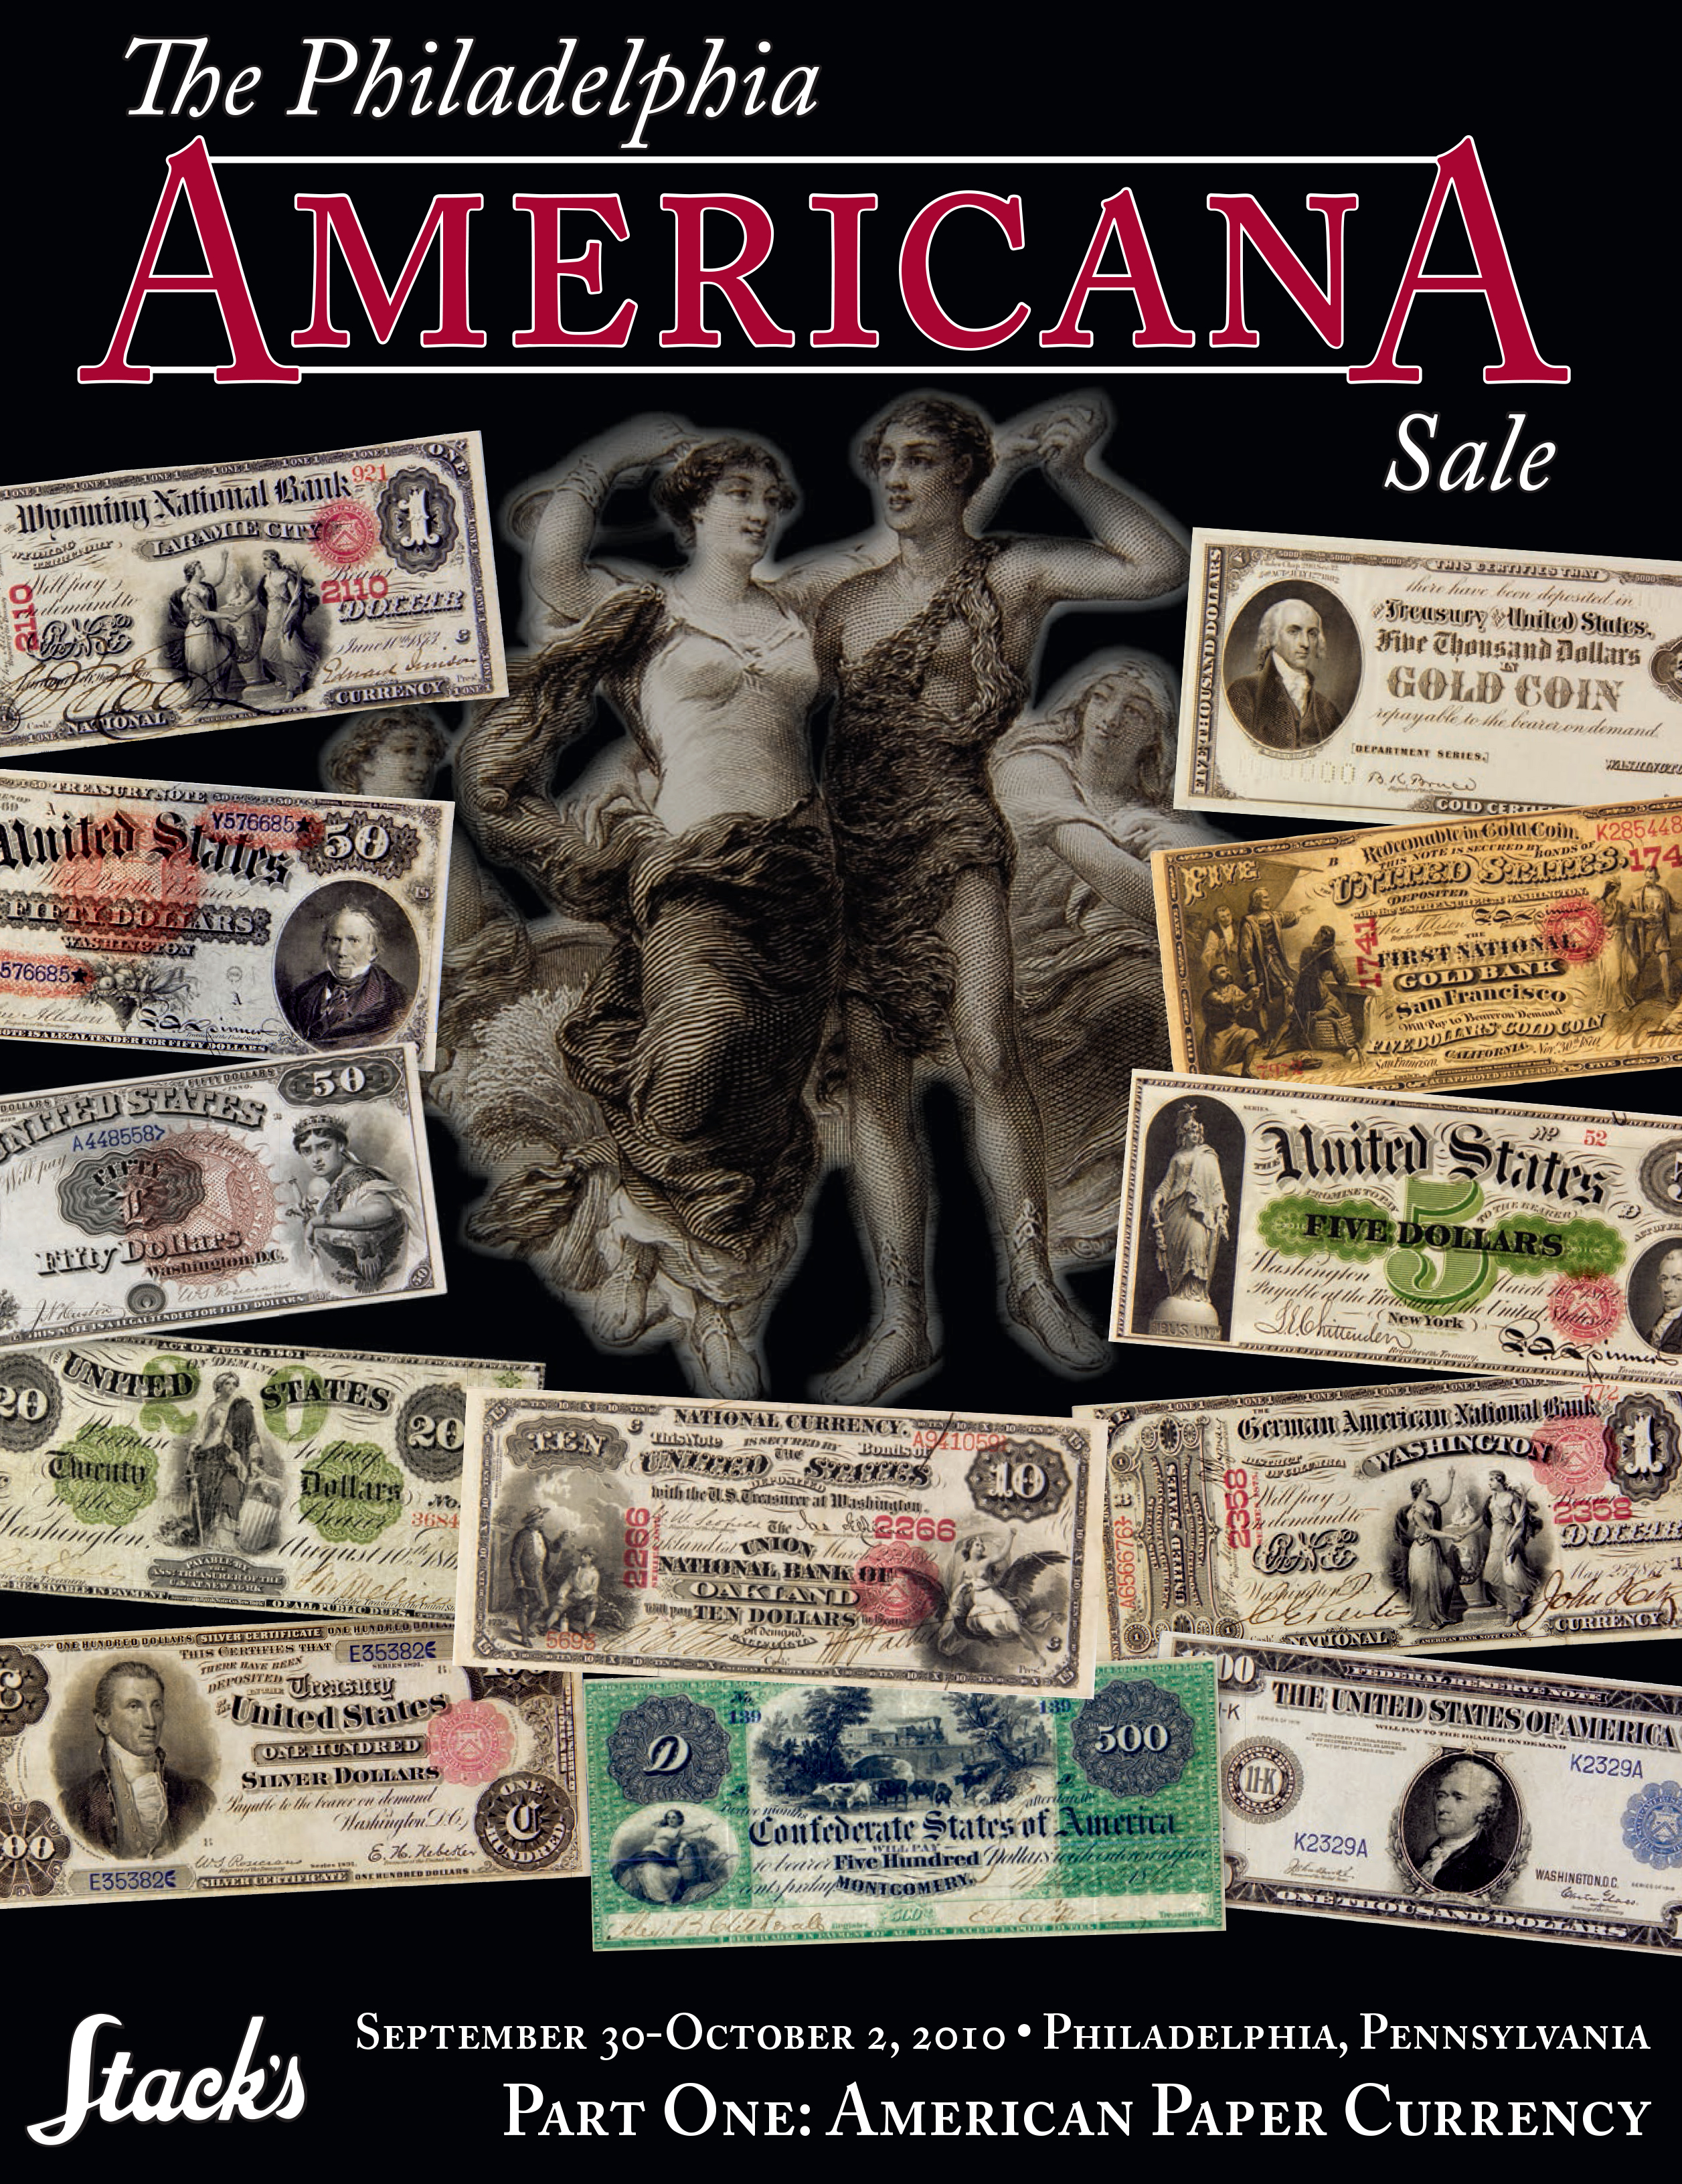 The Philadelphia Americana Sale Part One: American Paper Currency